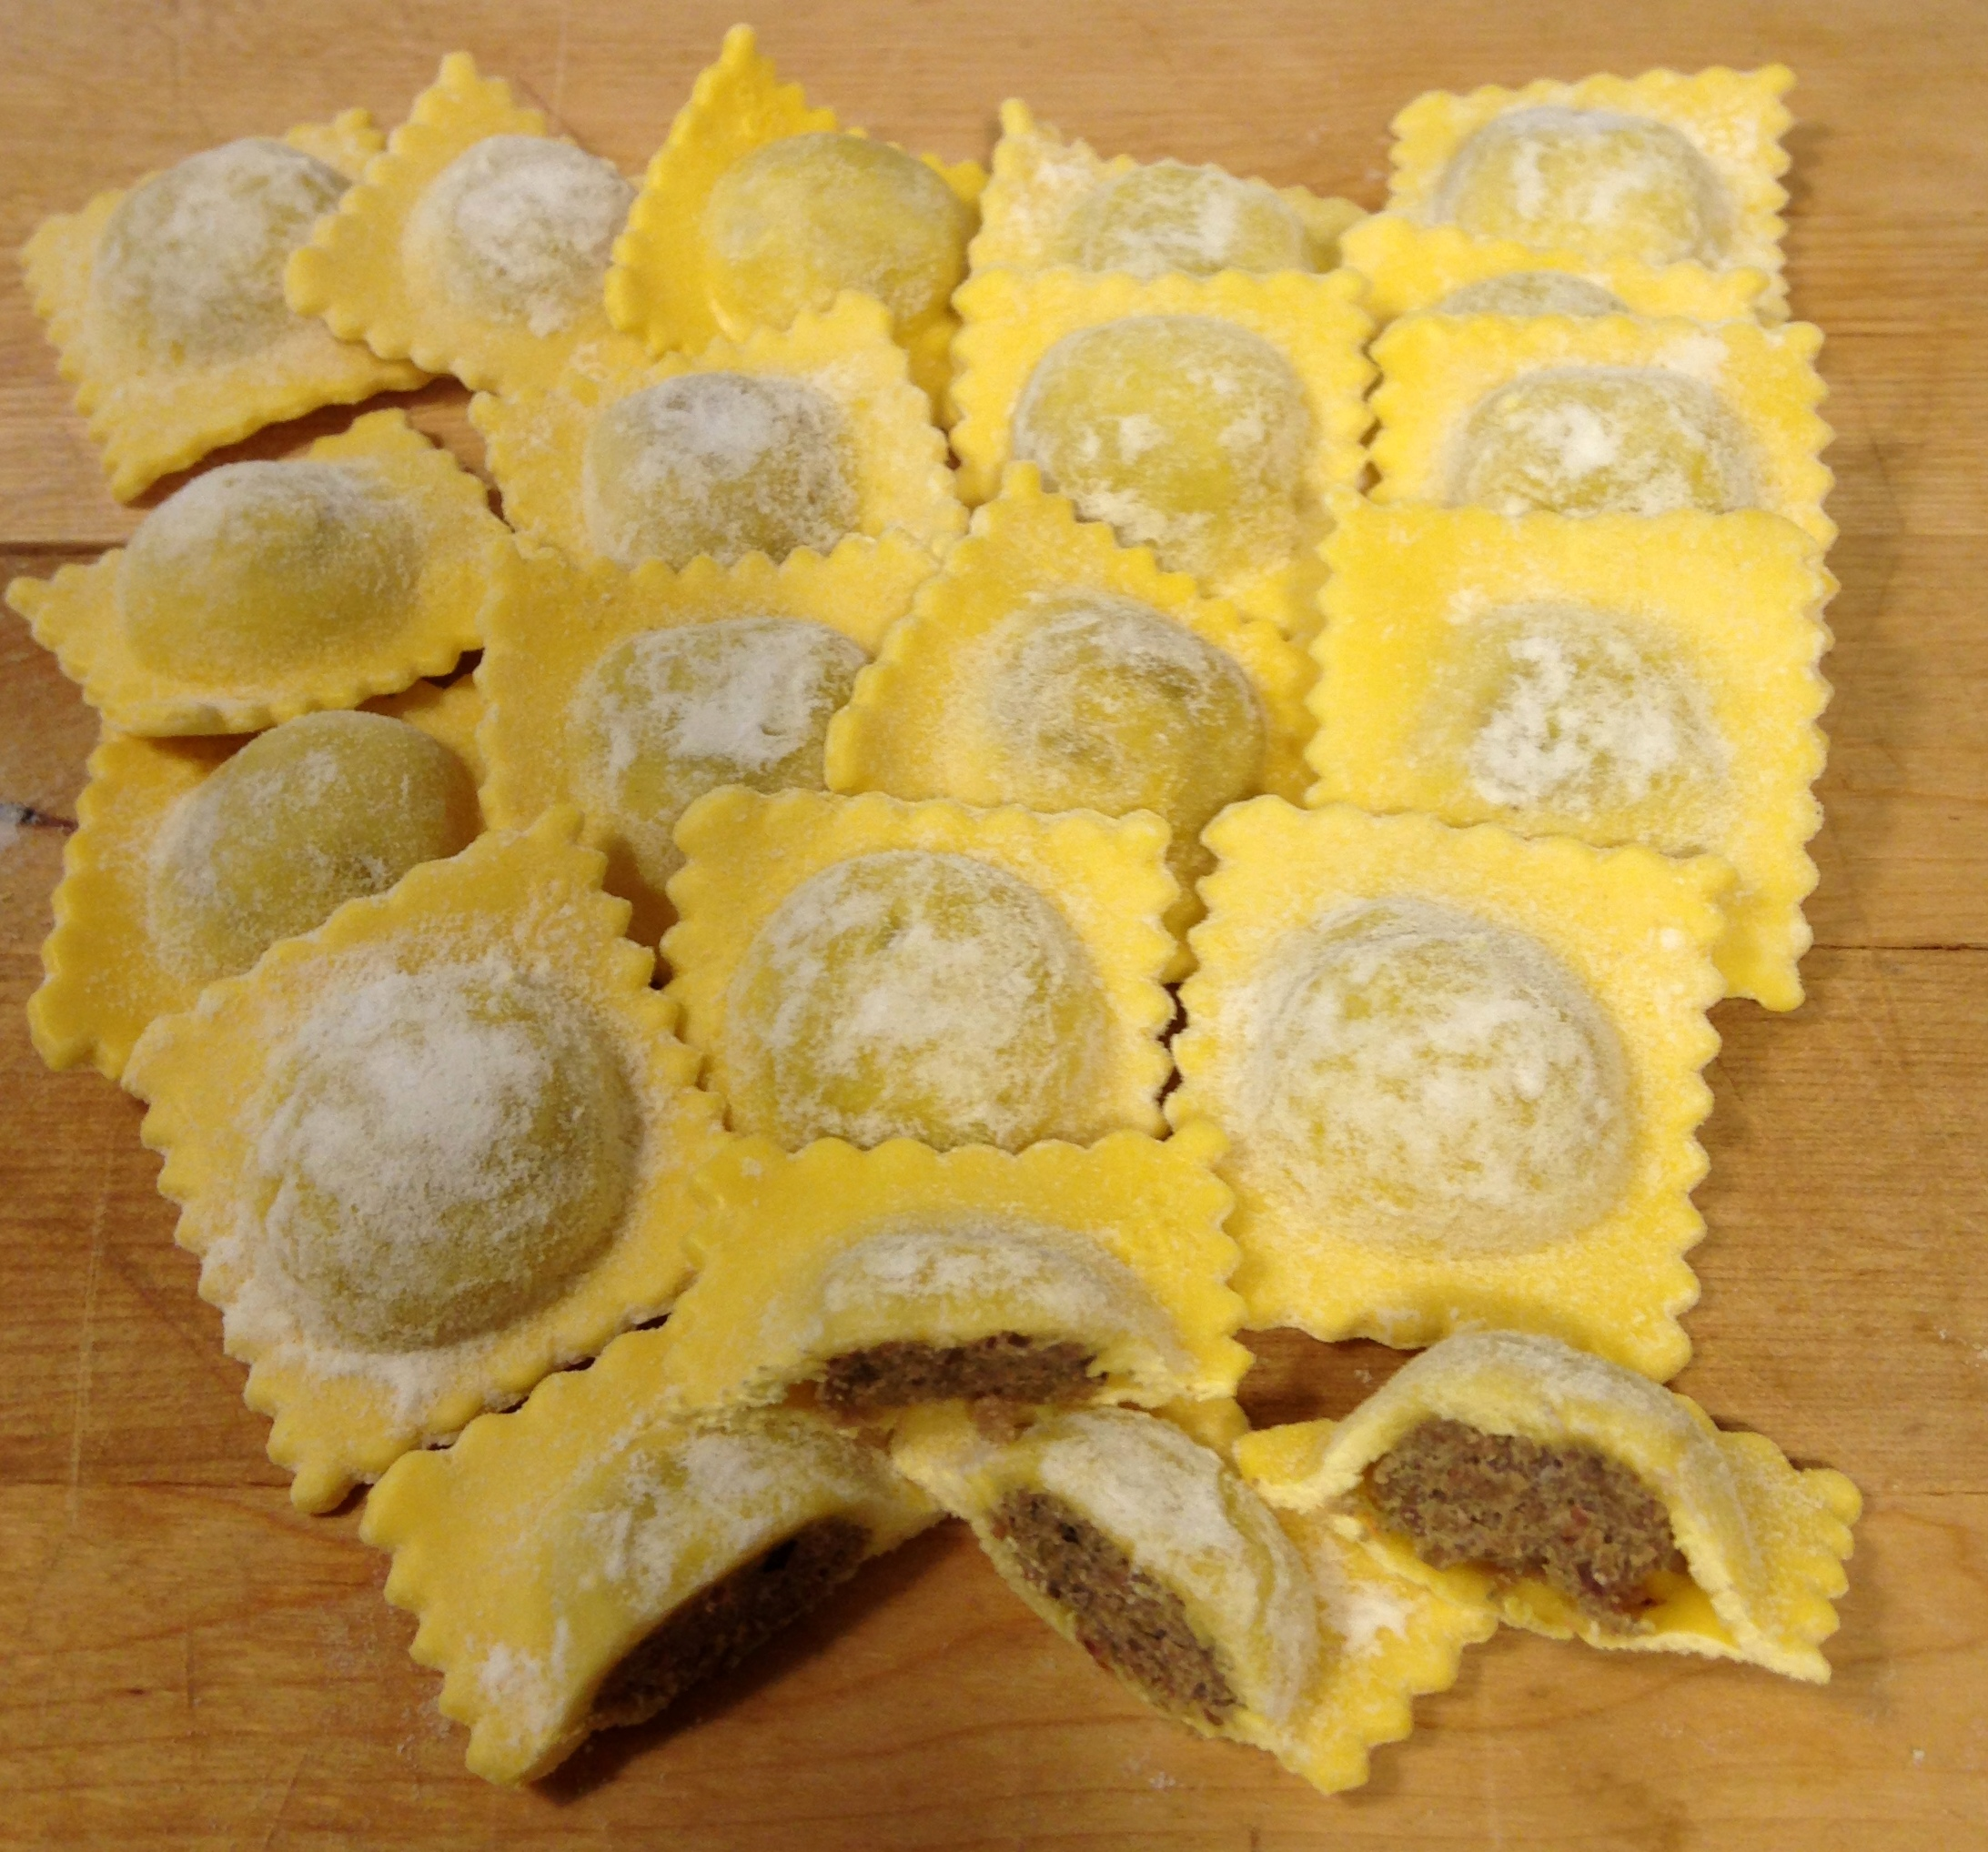 Pasta dough with butter 'di grasso' – for agnolotti with meat